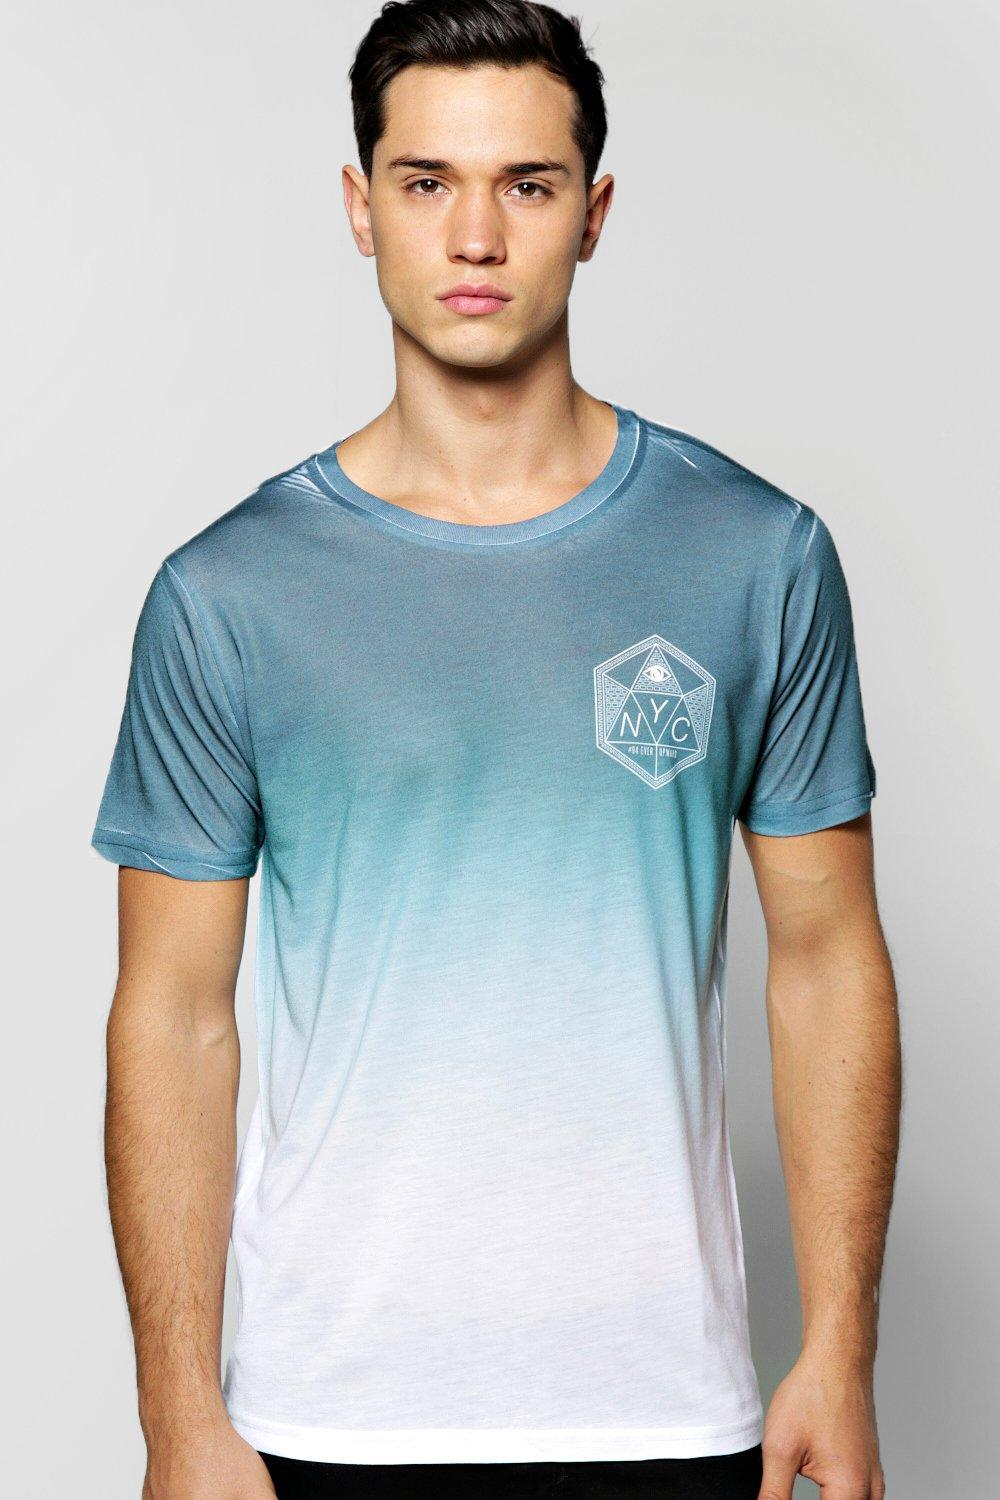 Faded NYC Sublimation T Shirt